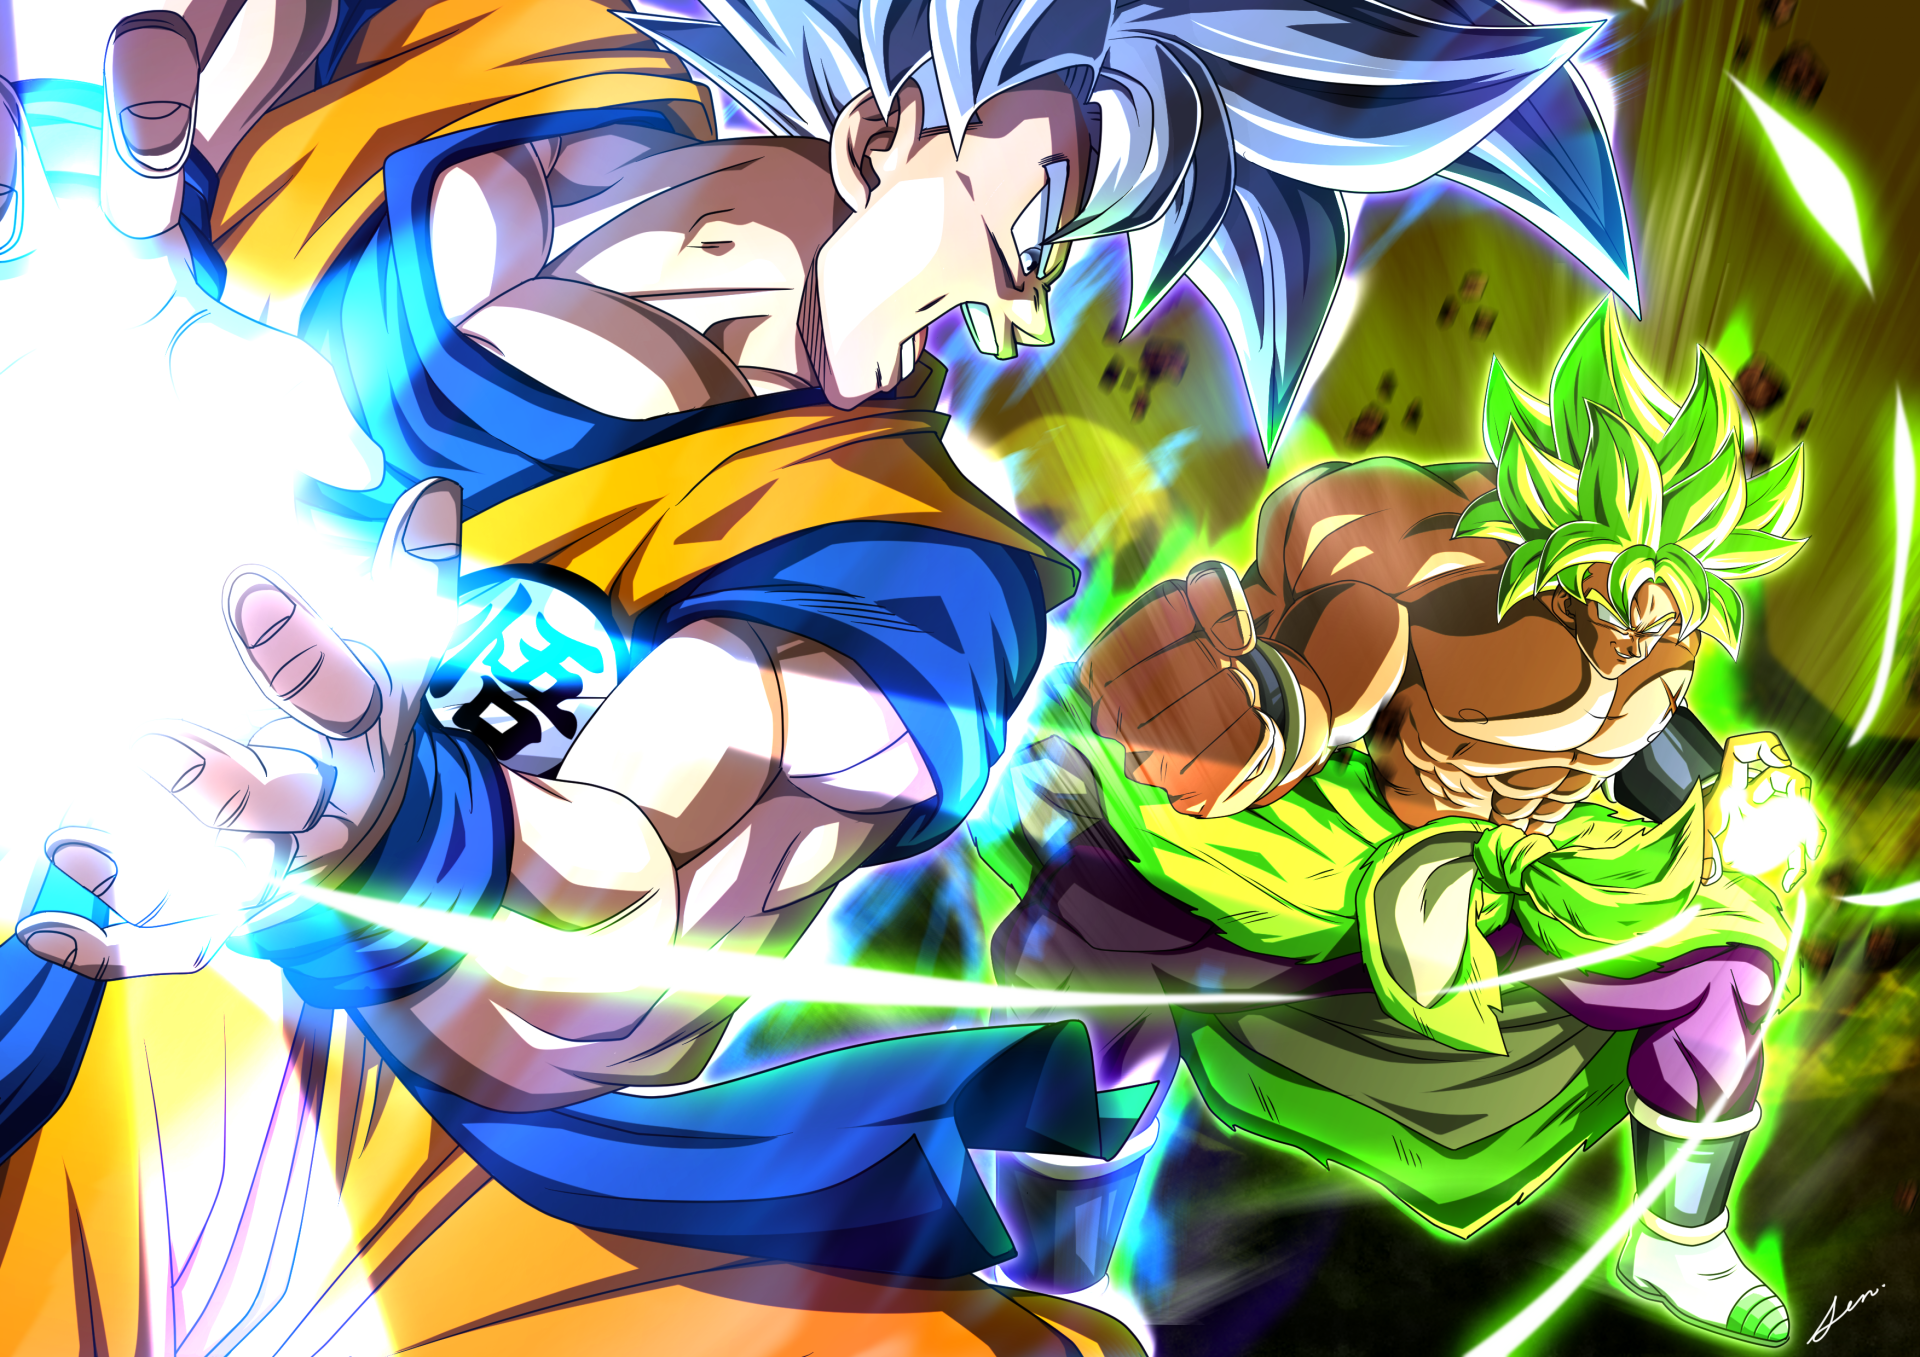 3508x2480 Goku Vs Broly Wallpaper Background Image. View